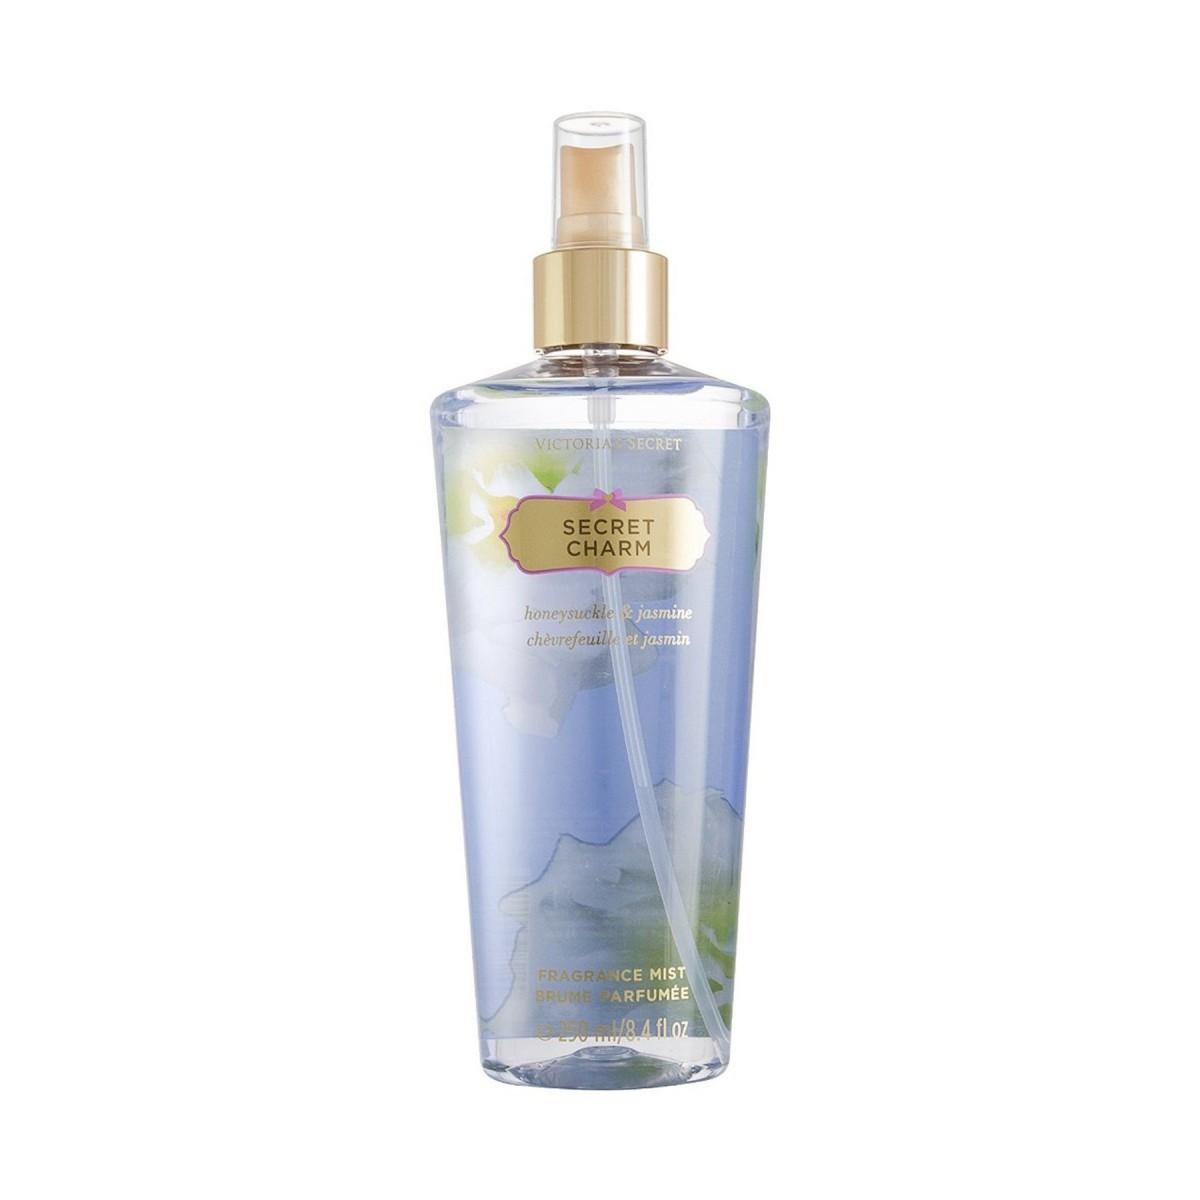 Consumo Victorias Secret Secret Charm Fragrance Mist 250 ml